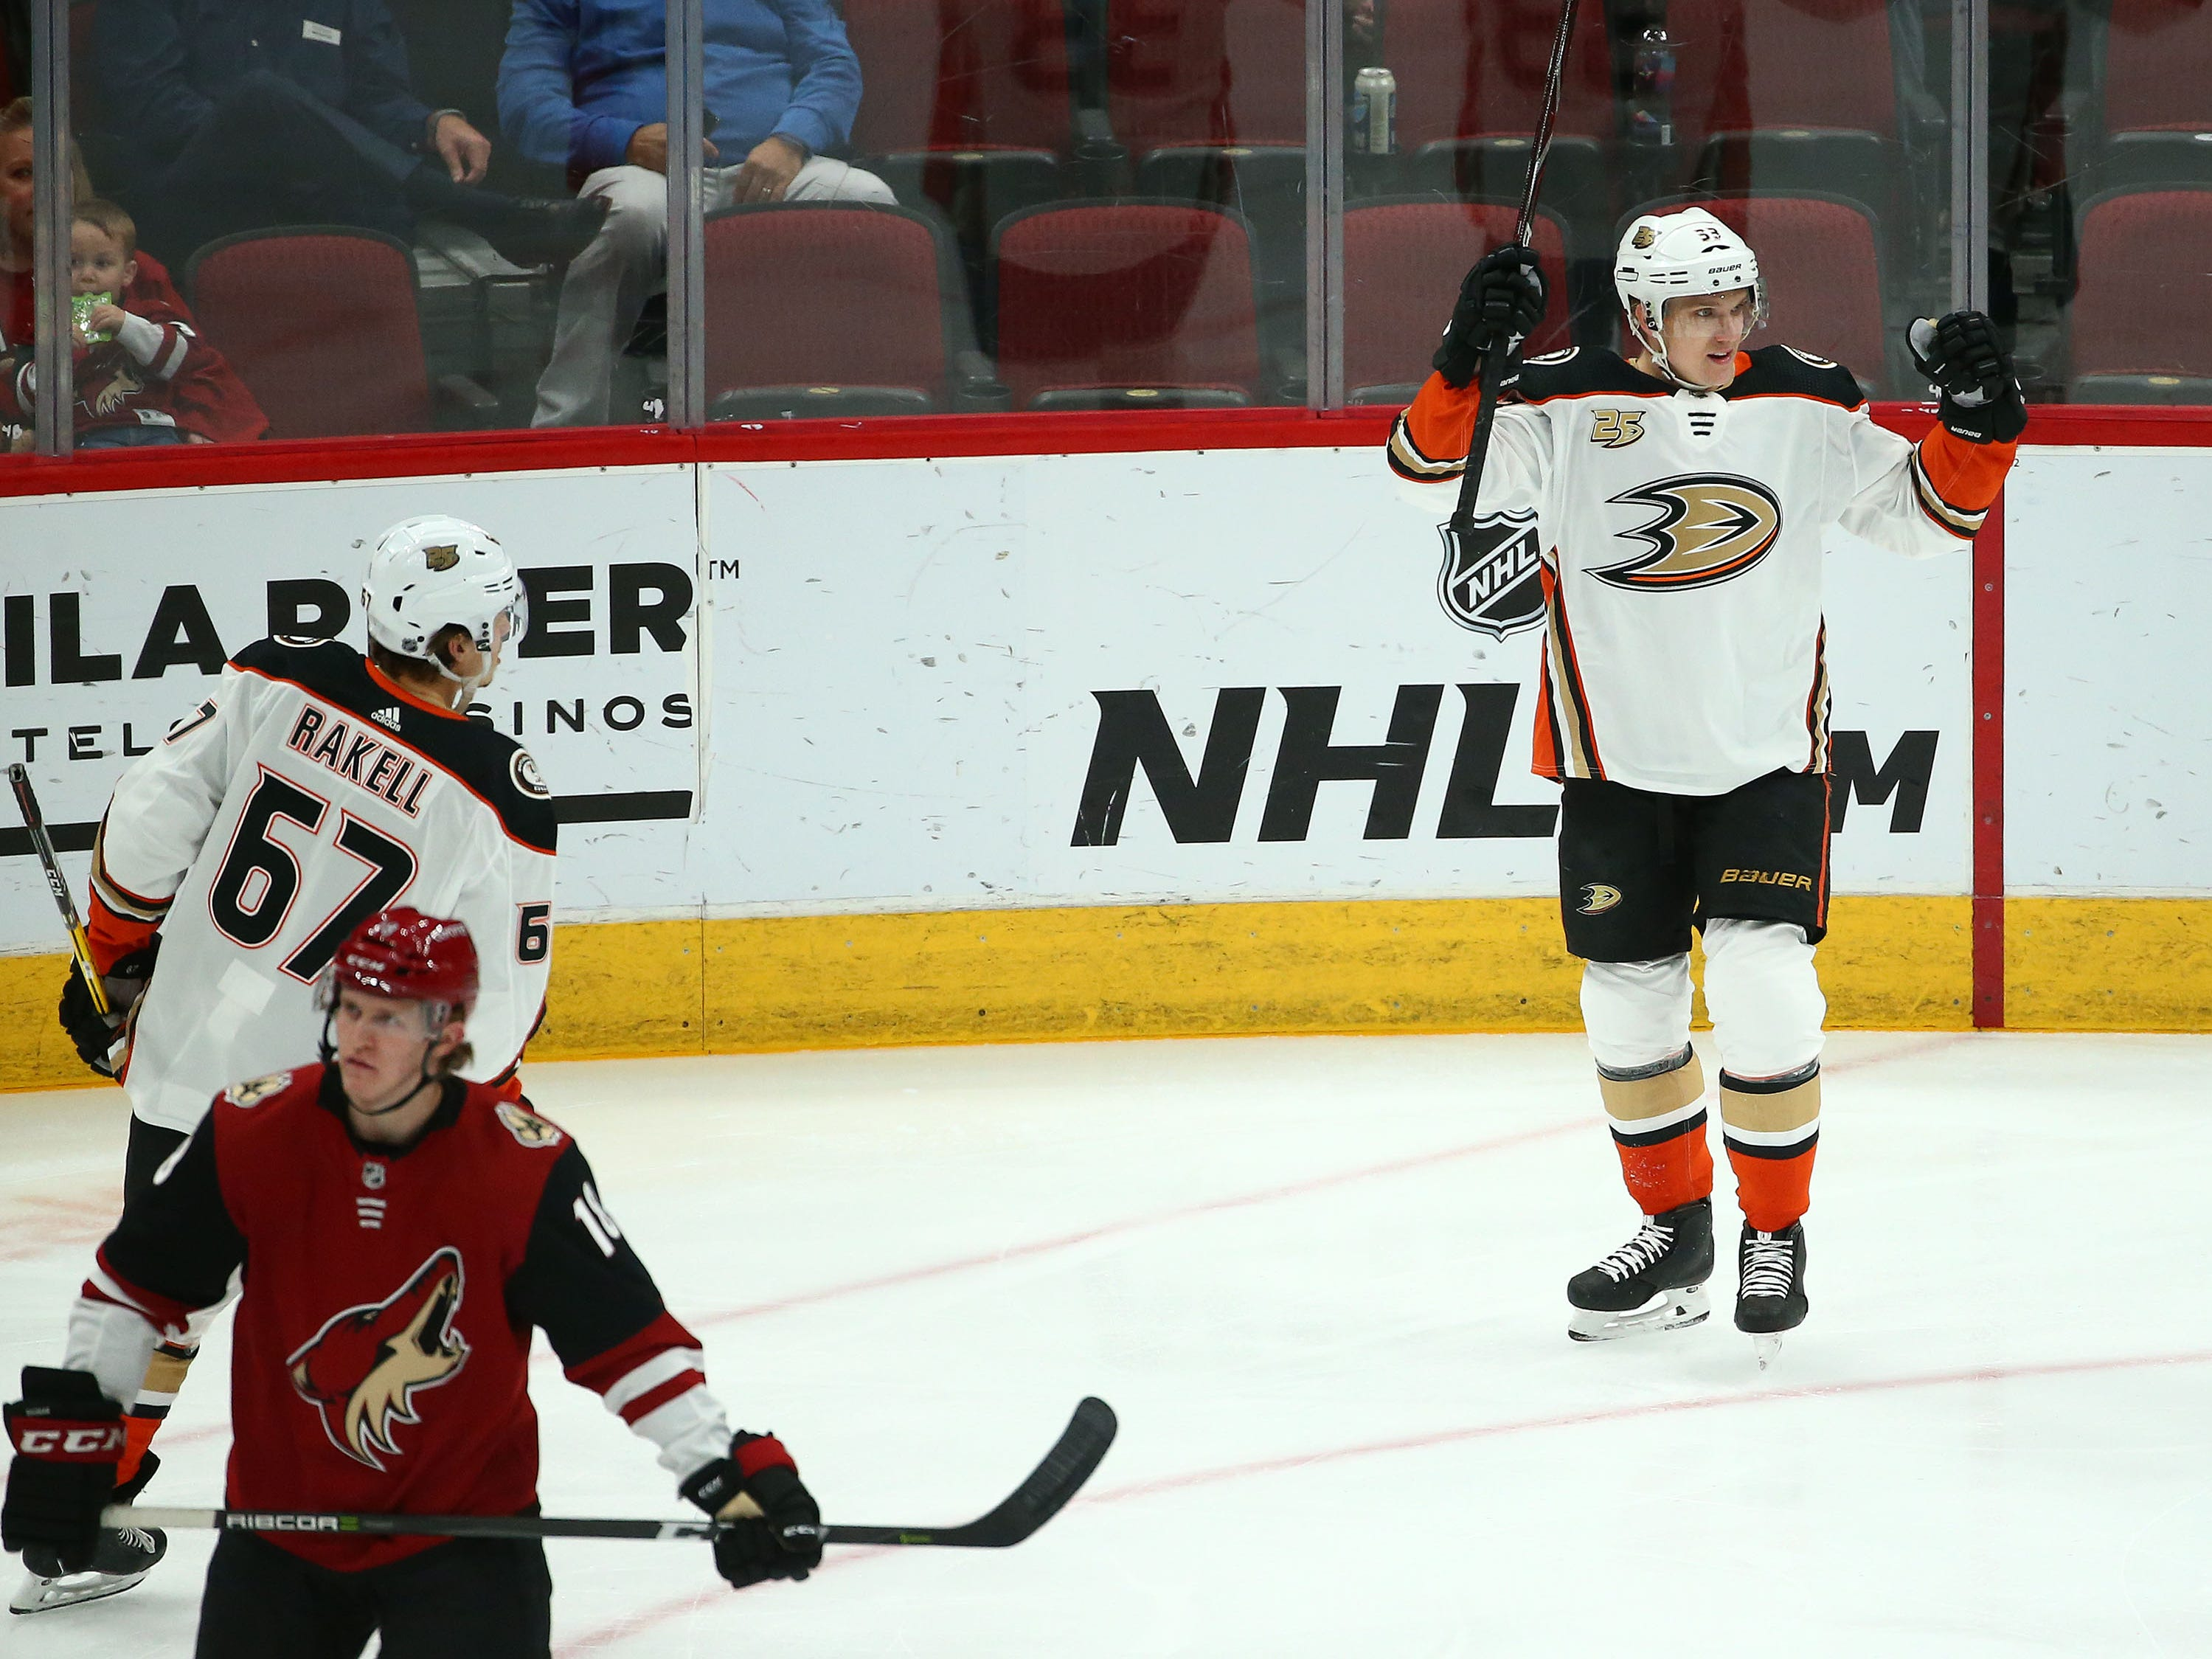 Anaheim Ducks right wing Jakob Silfverberg (33) celebrates his goal against Arizona in the first period on Mar. 5, 2019, at Gila River Arena in Glendale, Ariz.